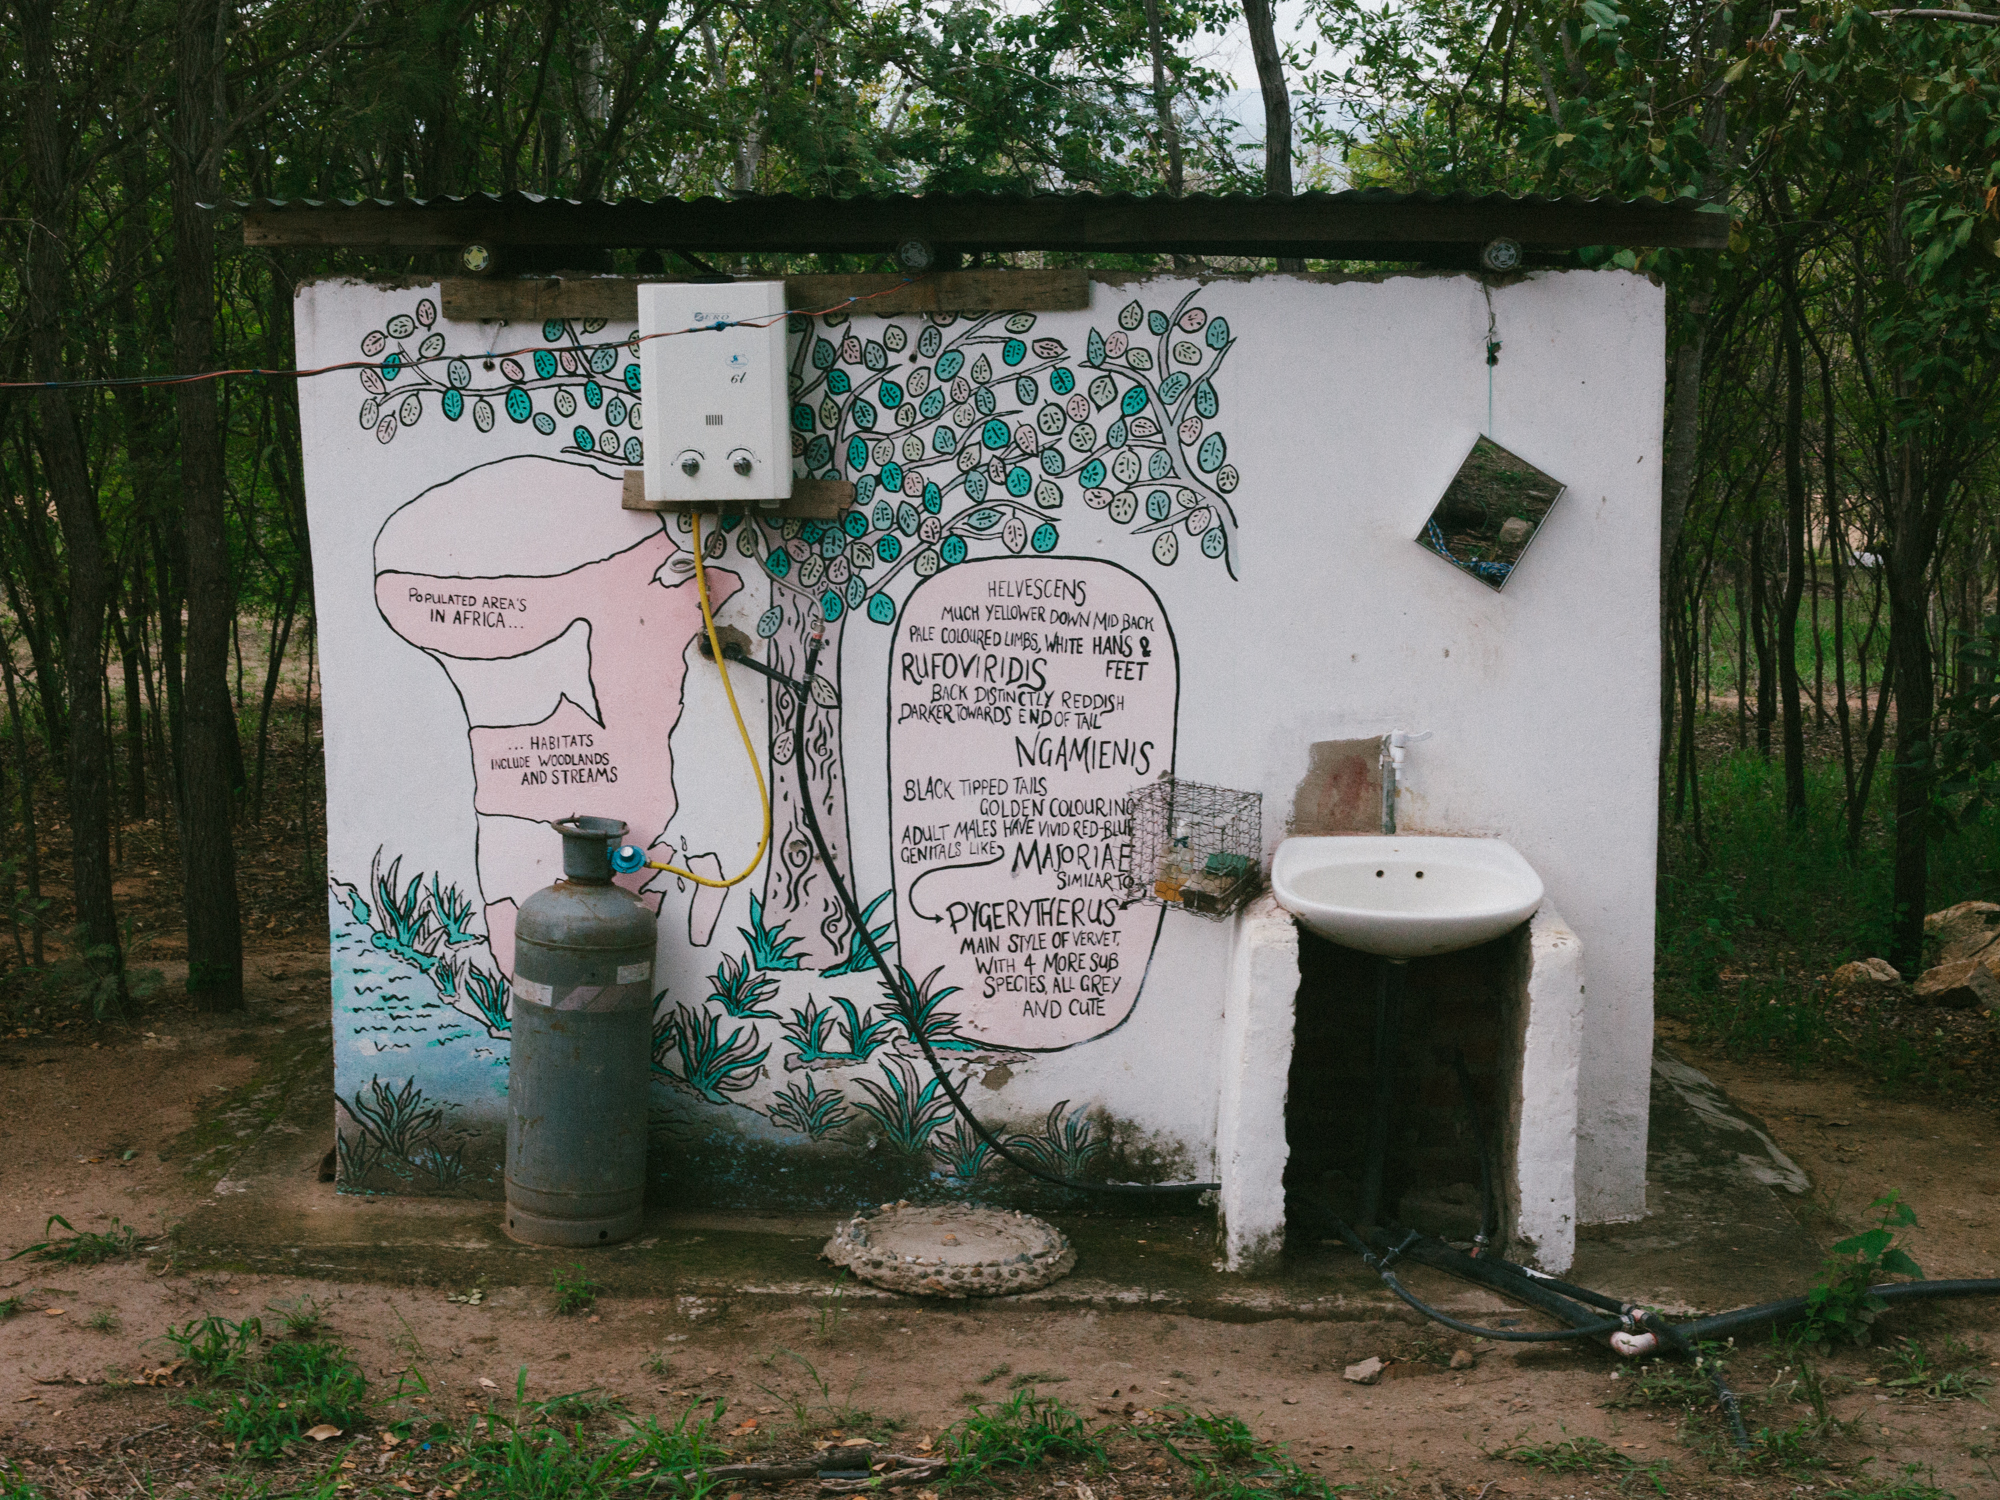 All the bathrooms at the VMF house eco-friendly composting toilets. This bathroom boasts a mural that explains the different vervet sub-species